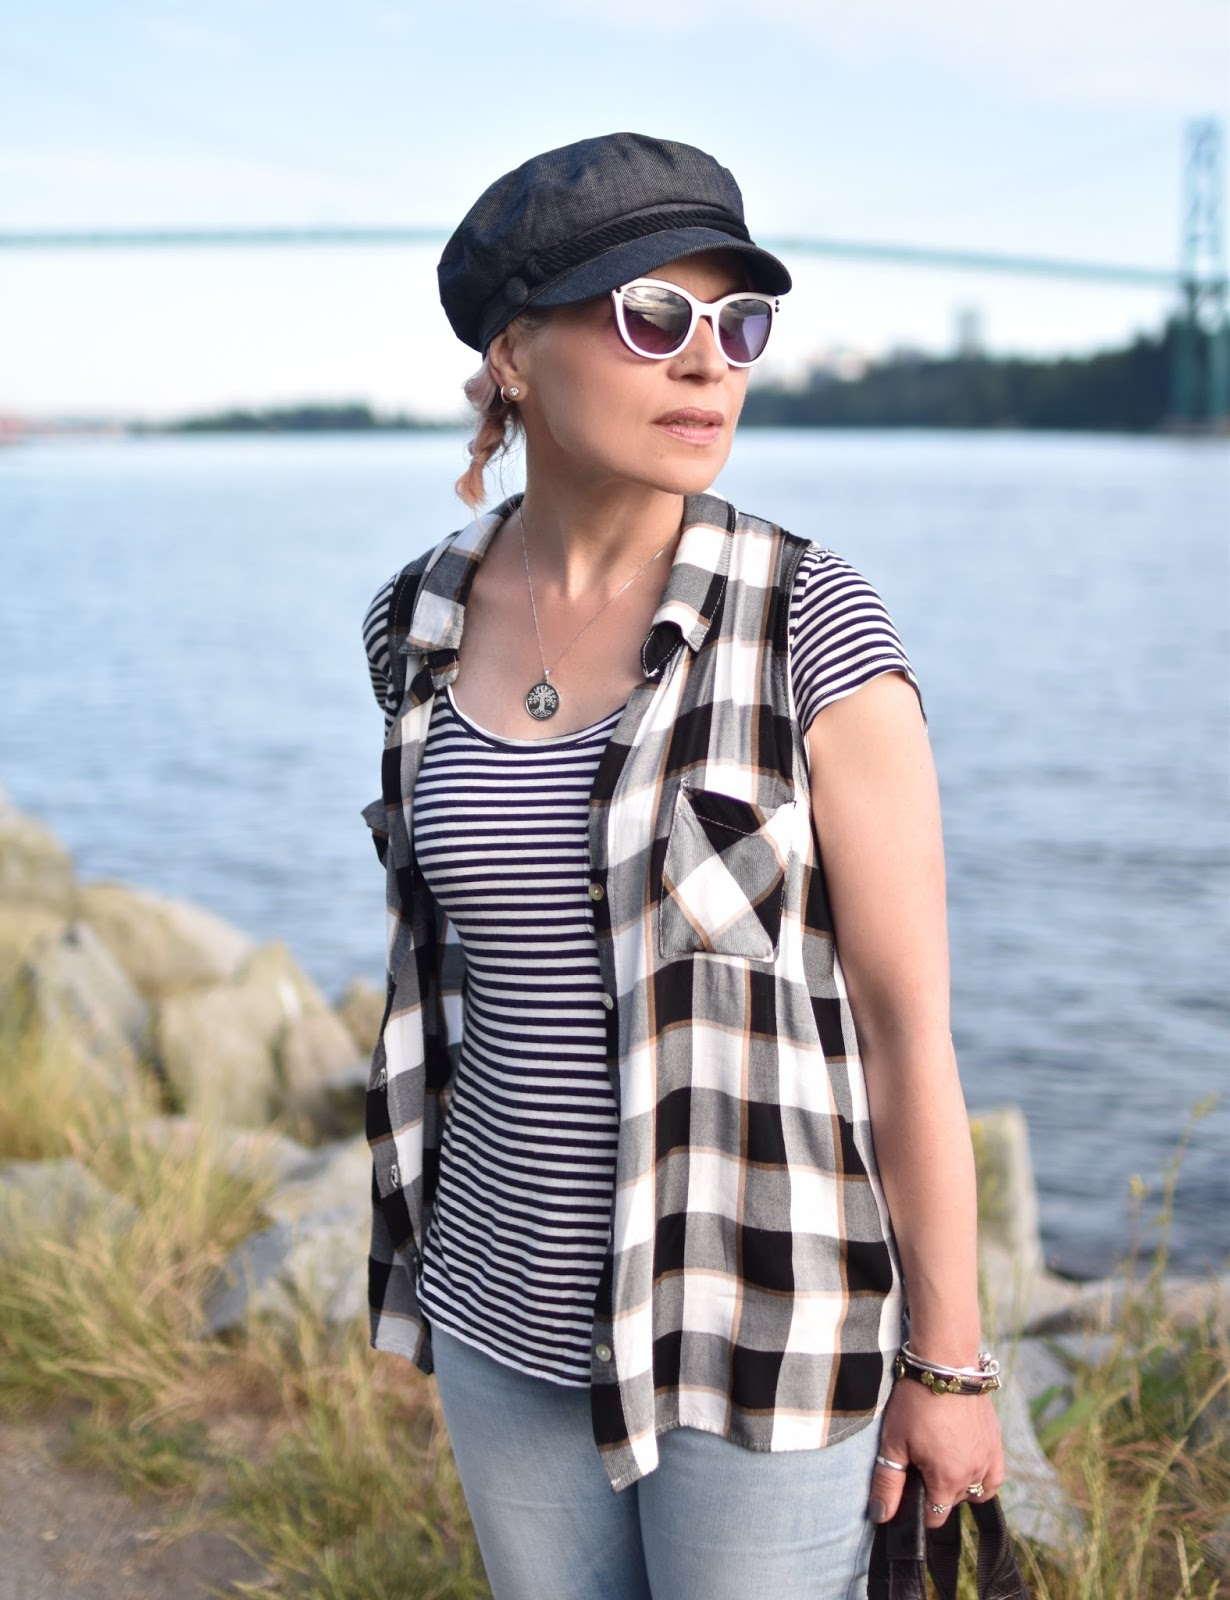 Monika Faulkner personal style inspiration - striped tee, plaid sleeveless shirt, white cat-eye sunglasses, baker boy cap